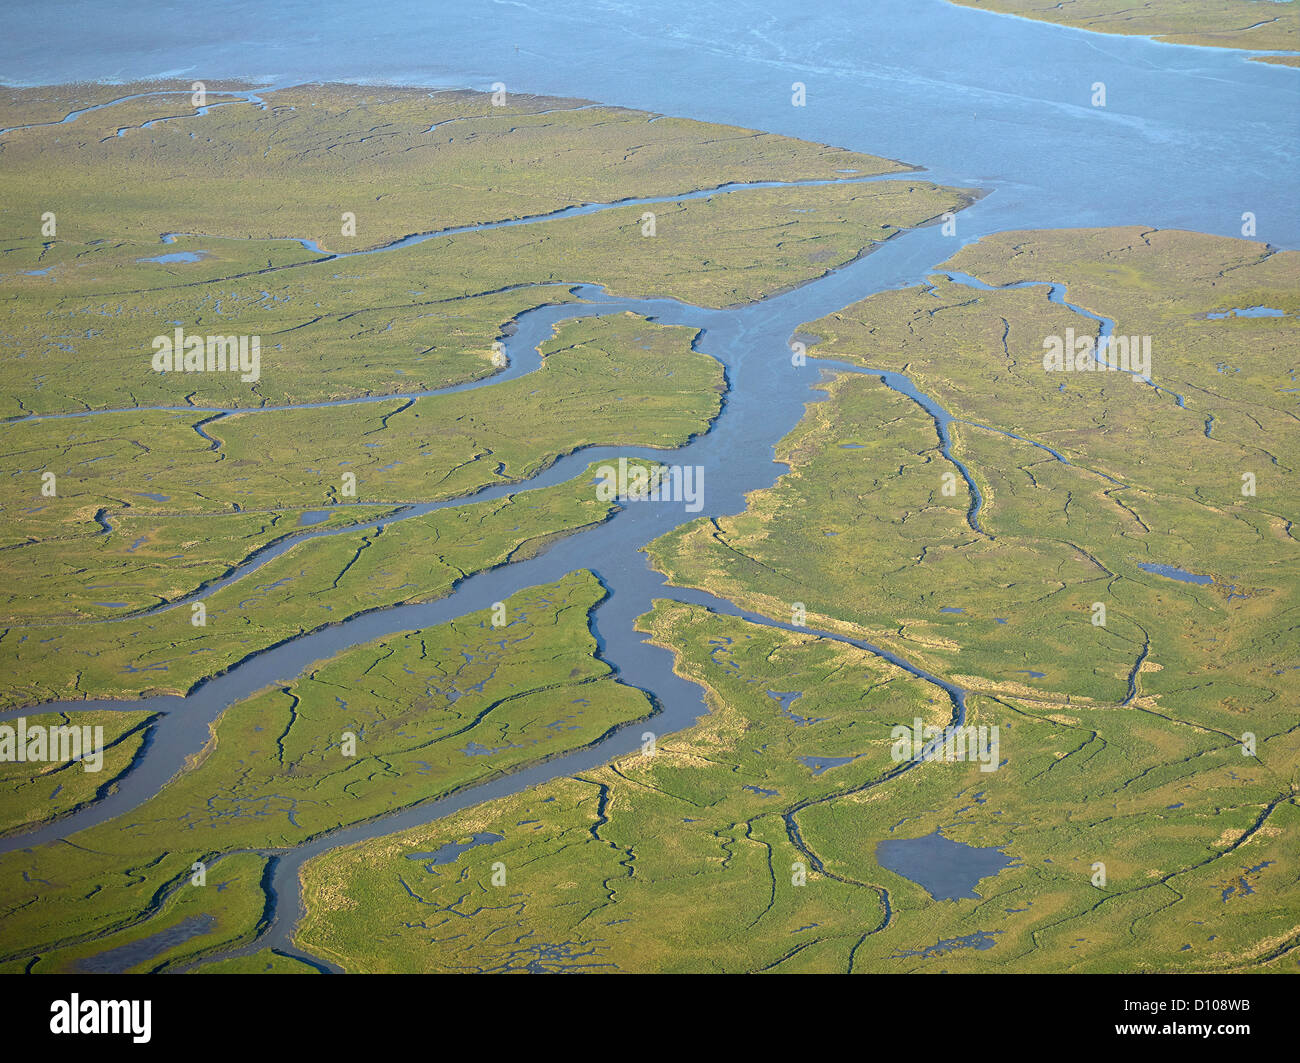 The River Ribble Estuary and Salt Marshes, from the air, west of Preston, North West England, UK - Stock Image